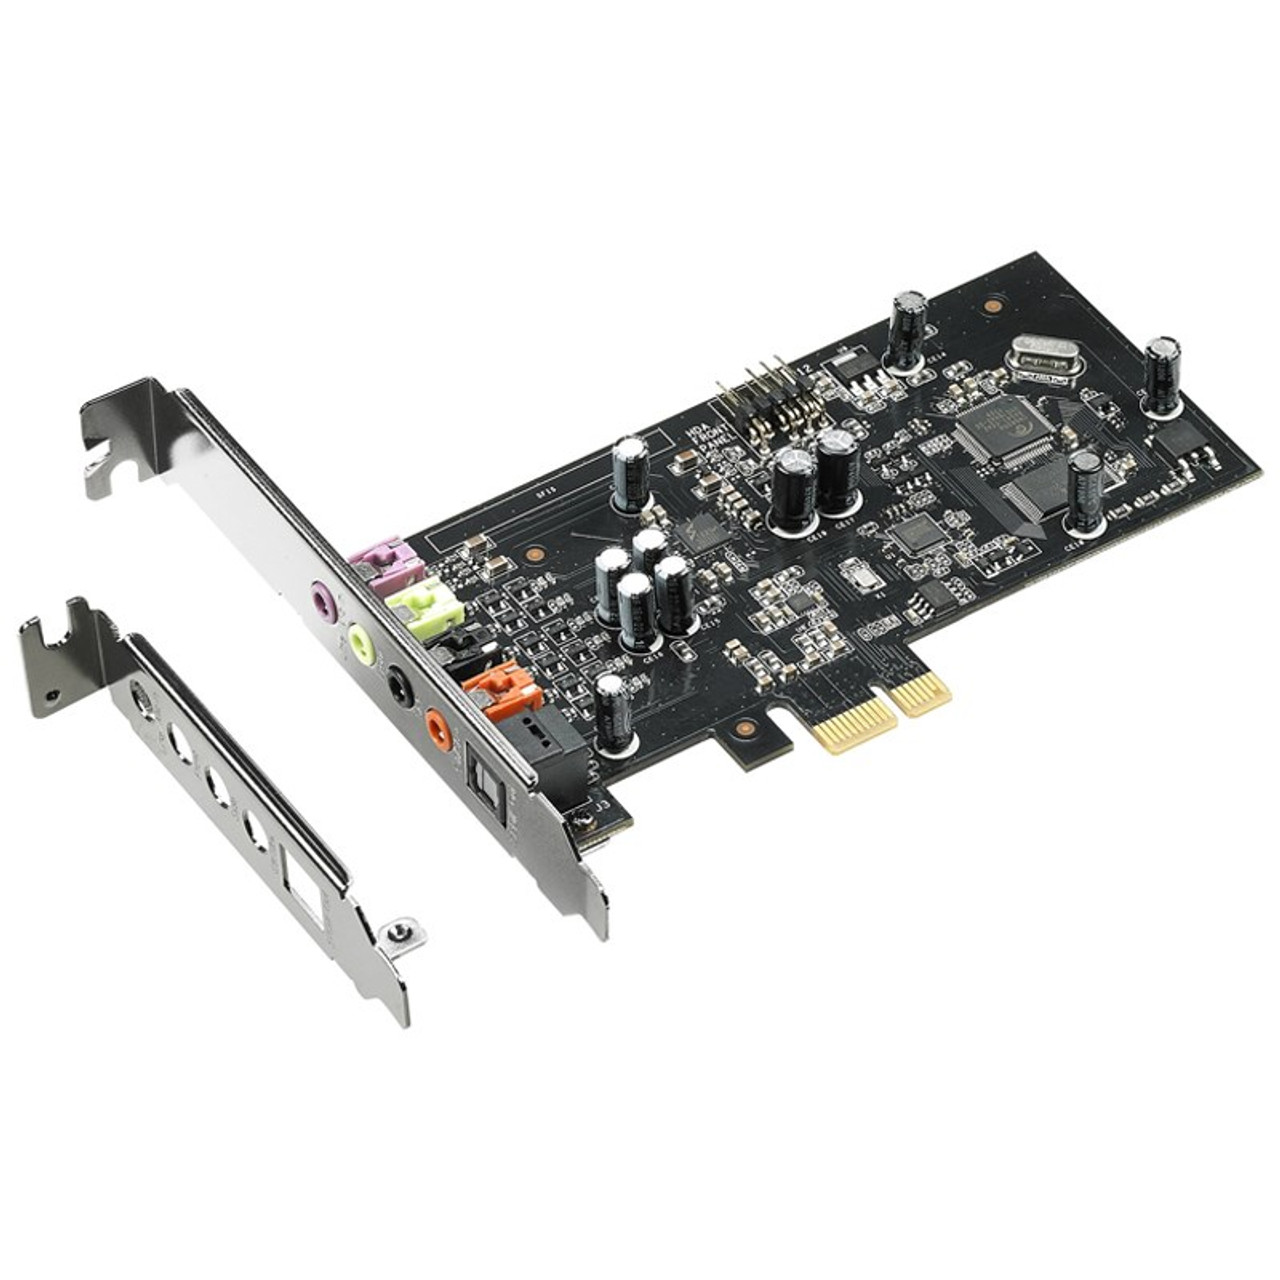 Product image for Asus Xonar SE 5.1 PCIe Gaming Sound Card | CX Computer Superstore